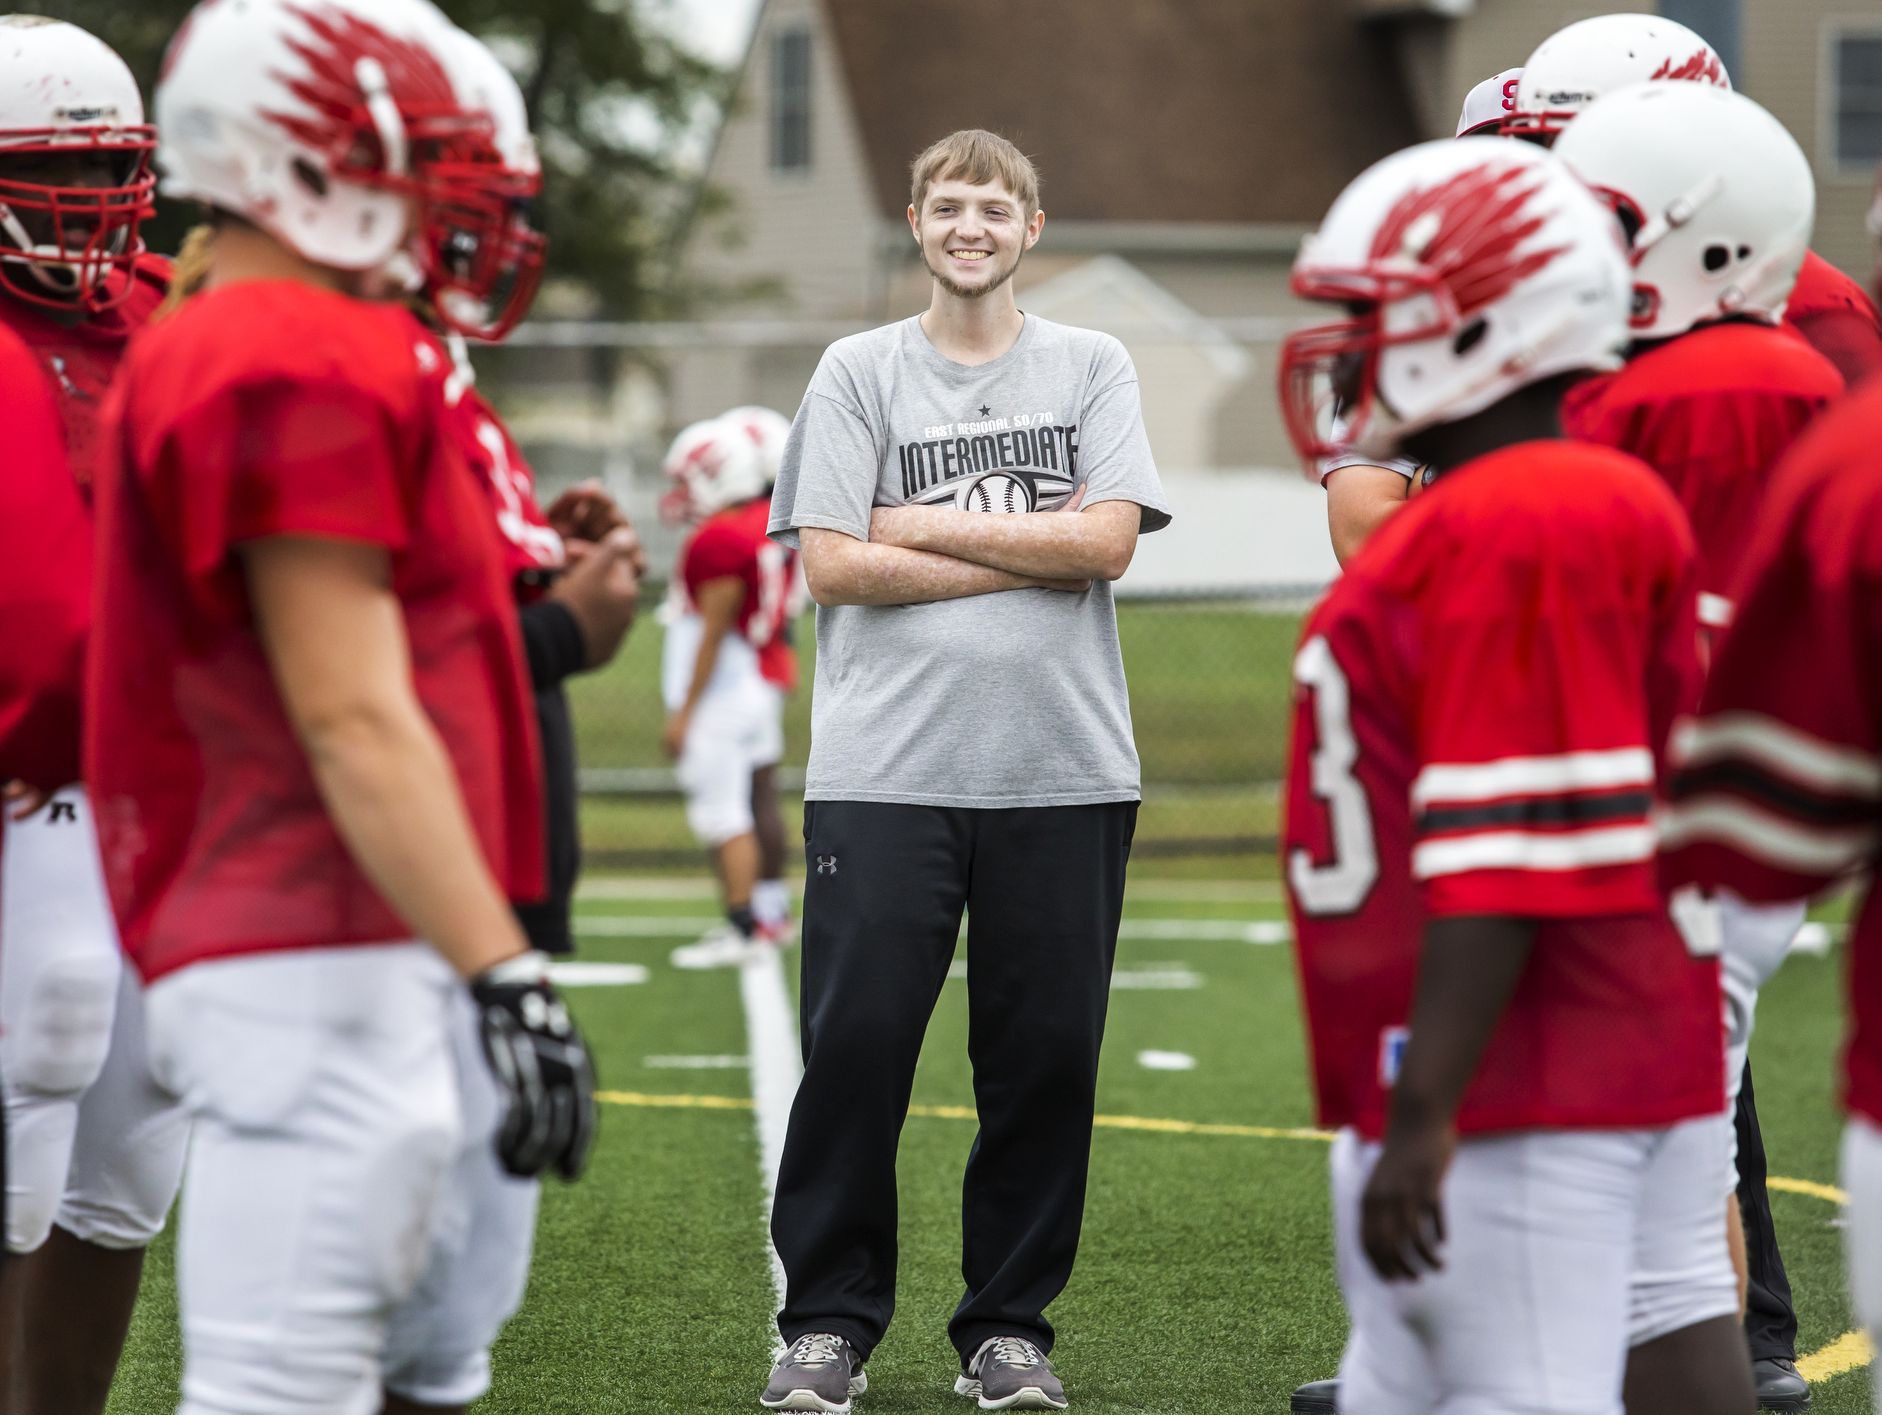 Colby Atkinson watches as lineman on the Smyrna High School football team line up for drills at practice on Wednesday afternoon.